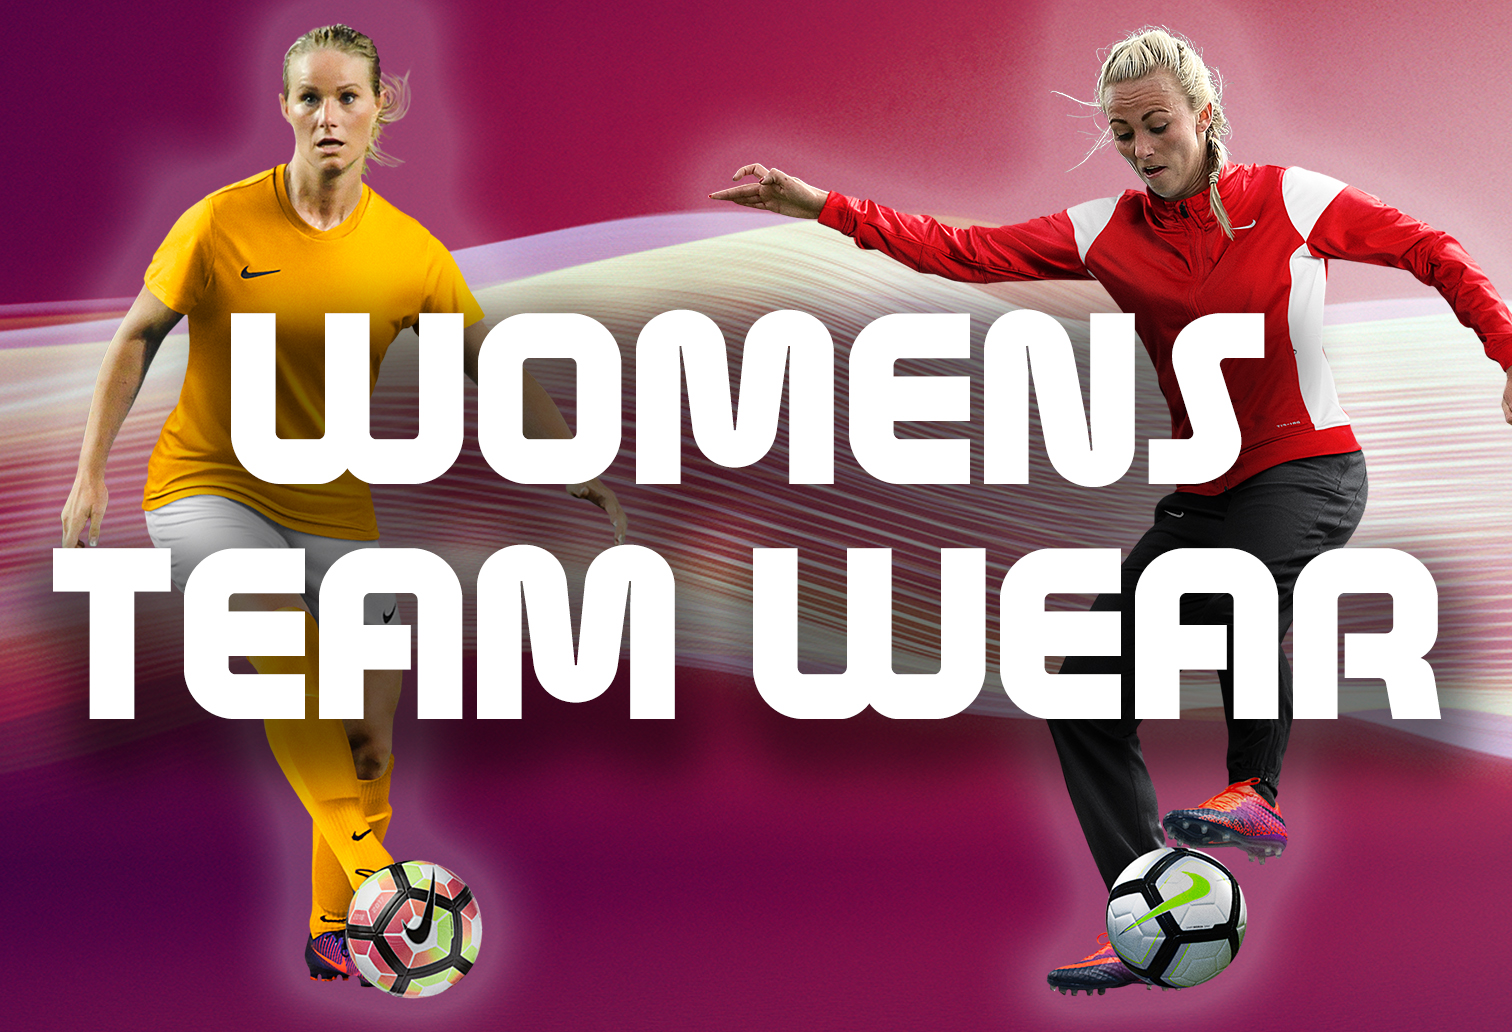 womens-team-wear.jpg